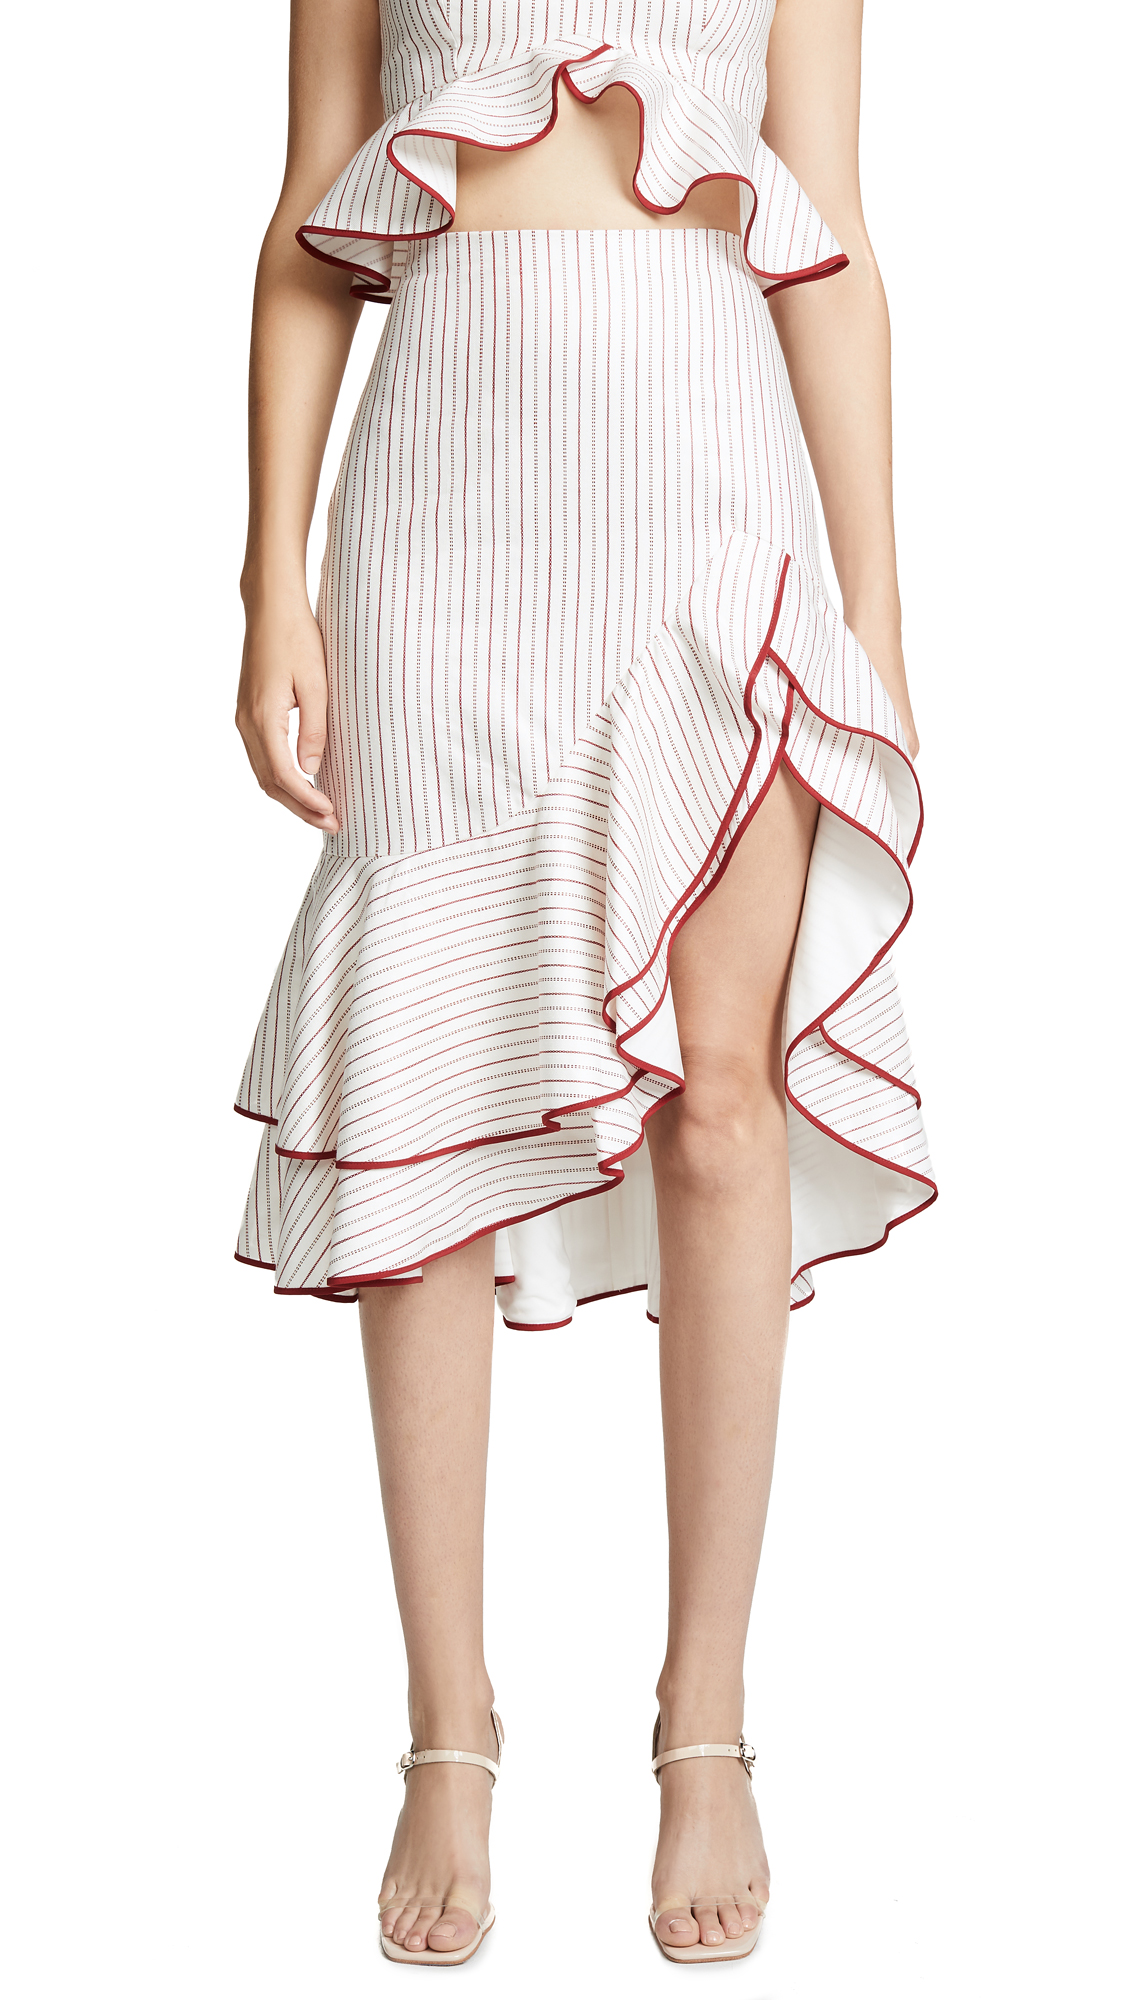 ALEXIS Ruffled Asymmetric Skirt in Rouge Stripe